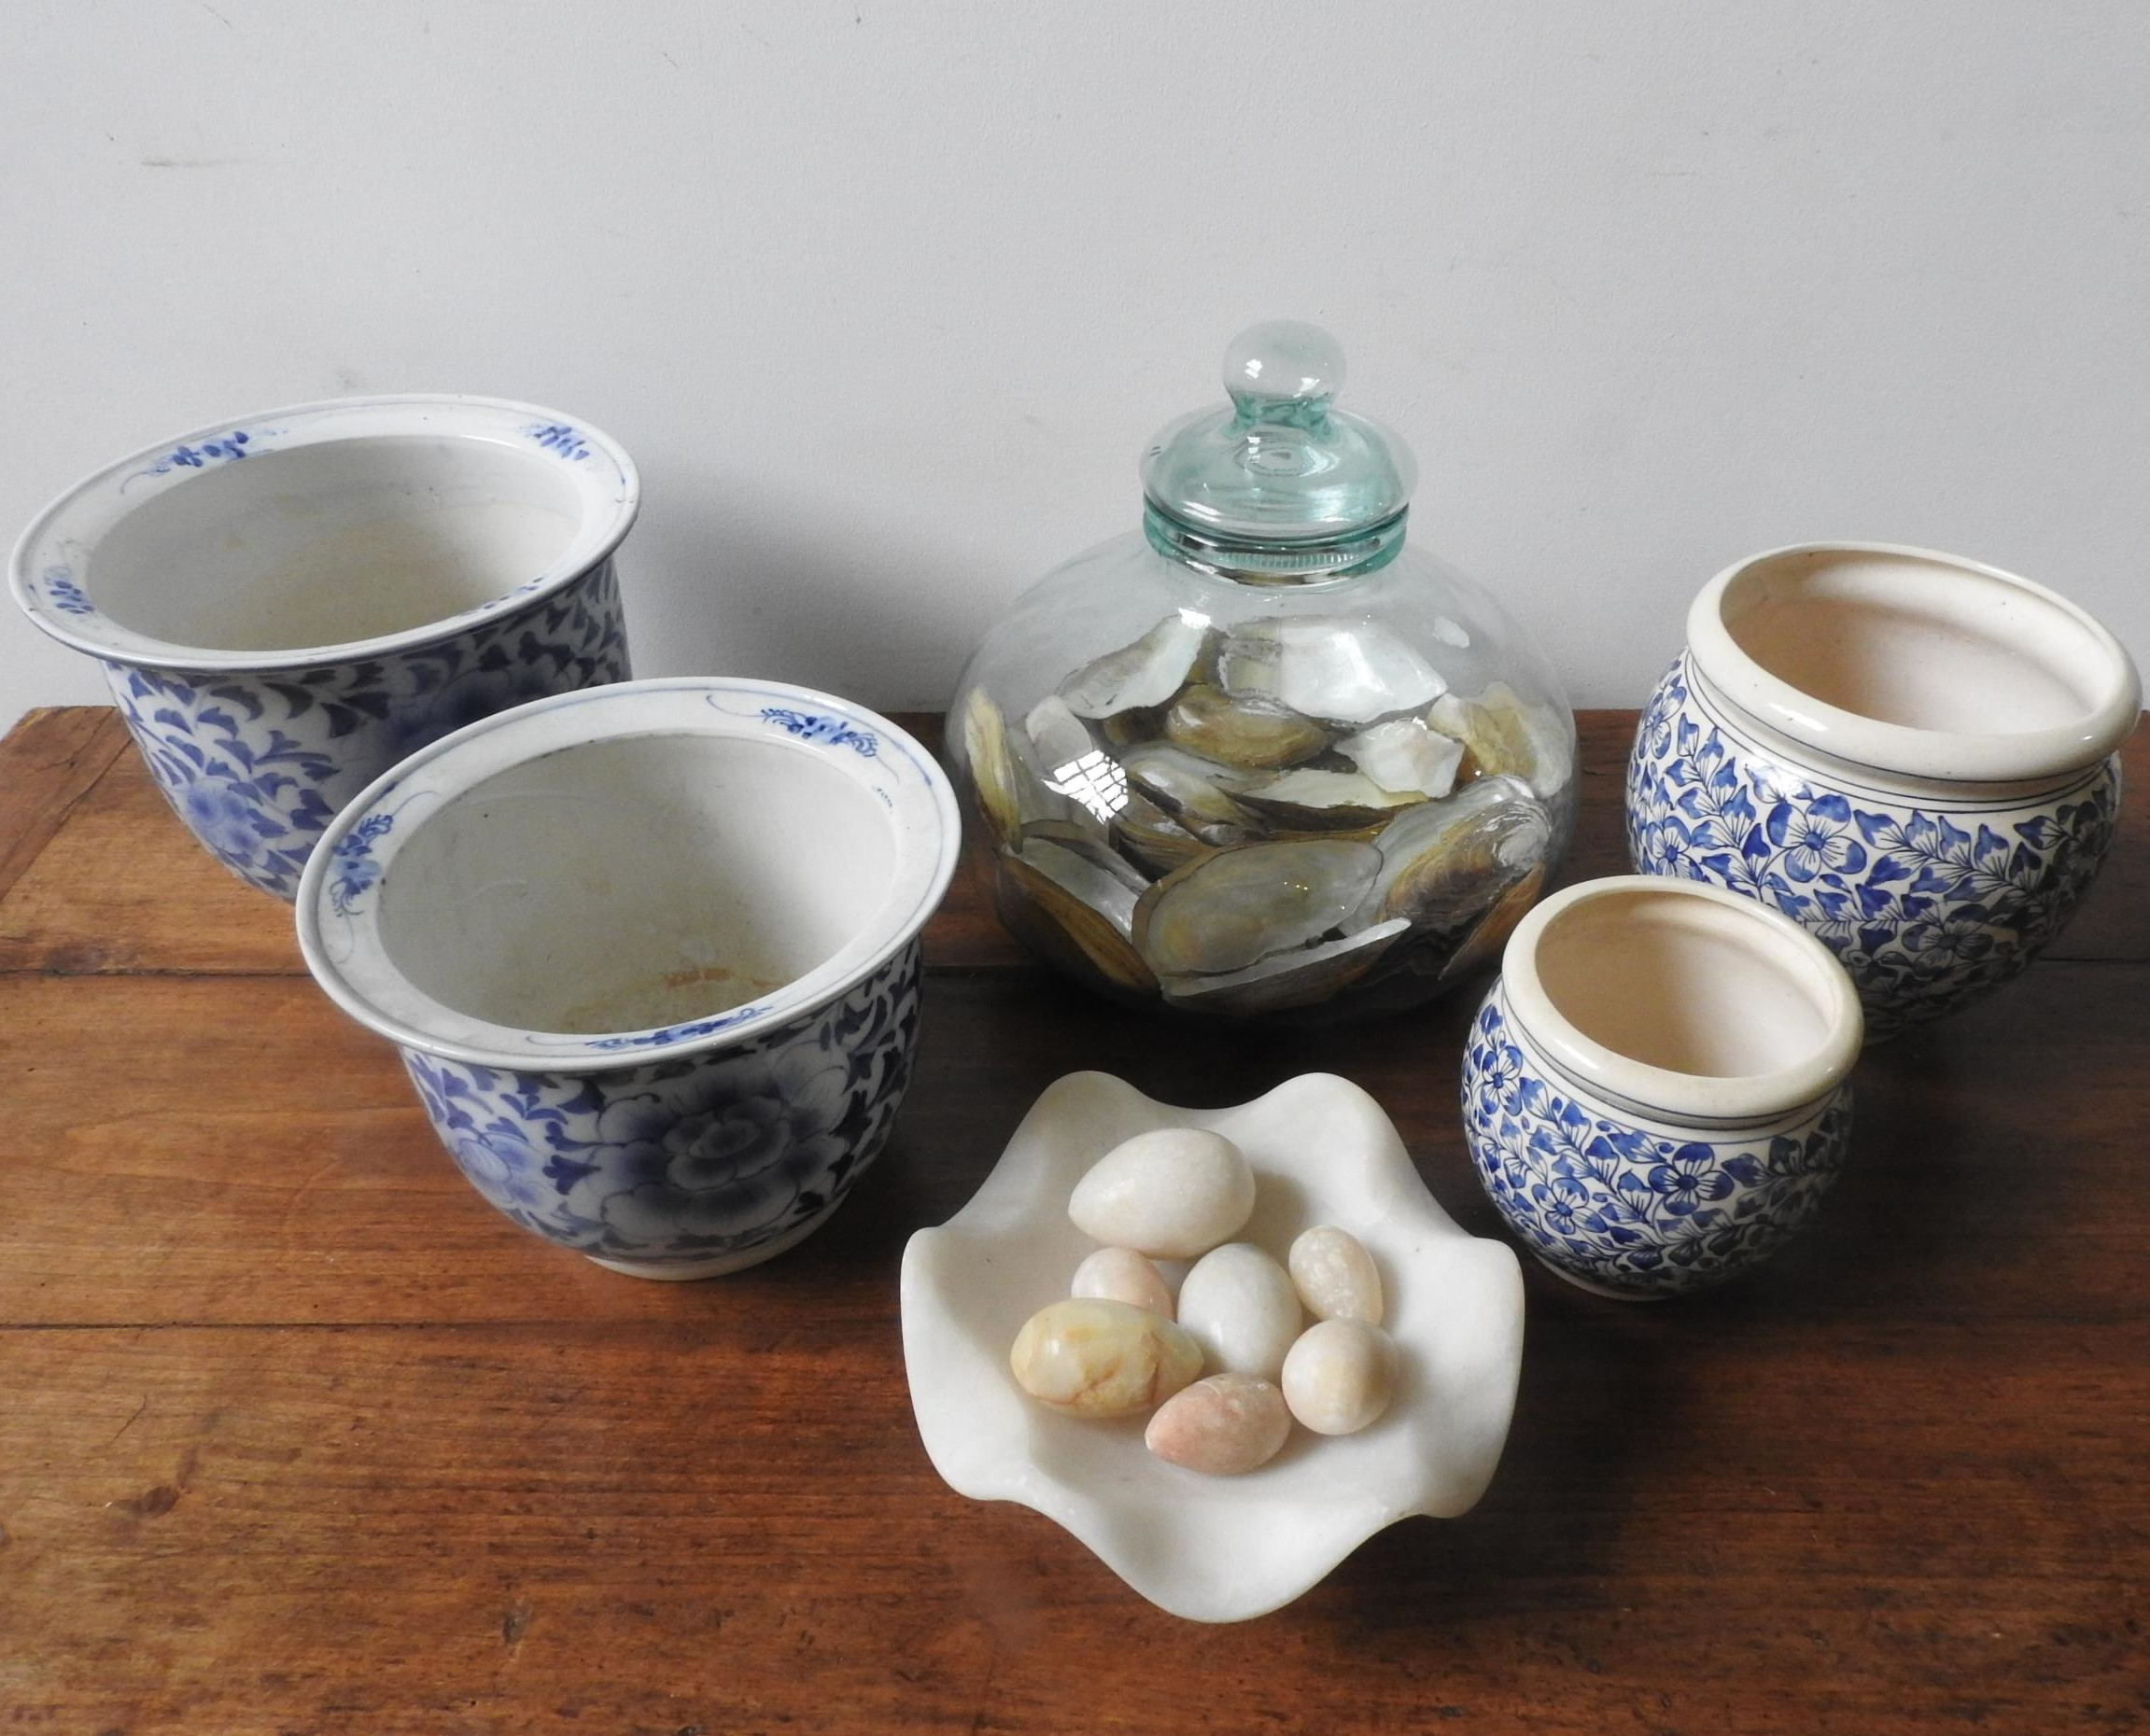 FOUR BLUE AND WHITE GLAZED JARDINIERES, ALABASTER BOWL AND EGG ORNAMENTS AND A LARGE GLASS JAR - Image 2 of 2